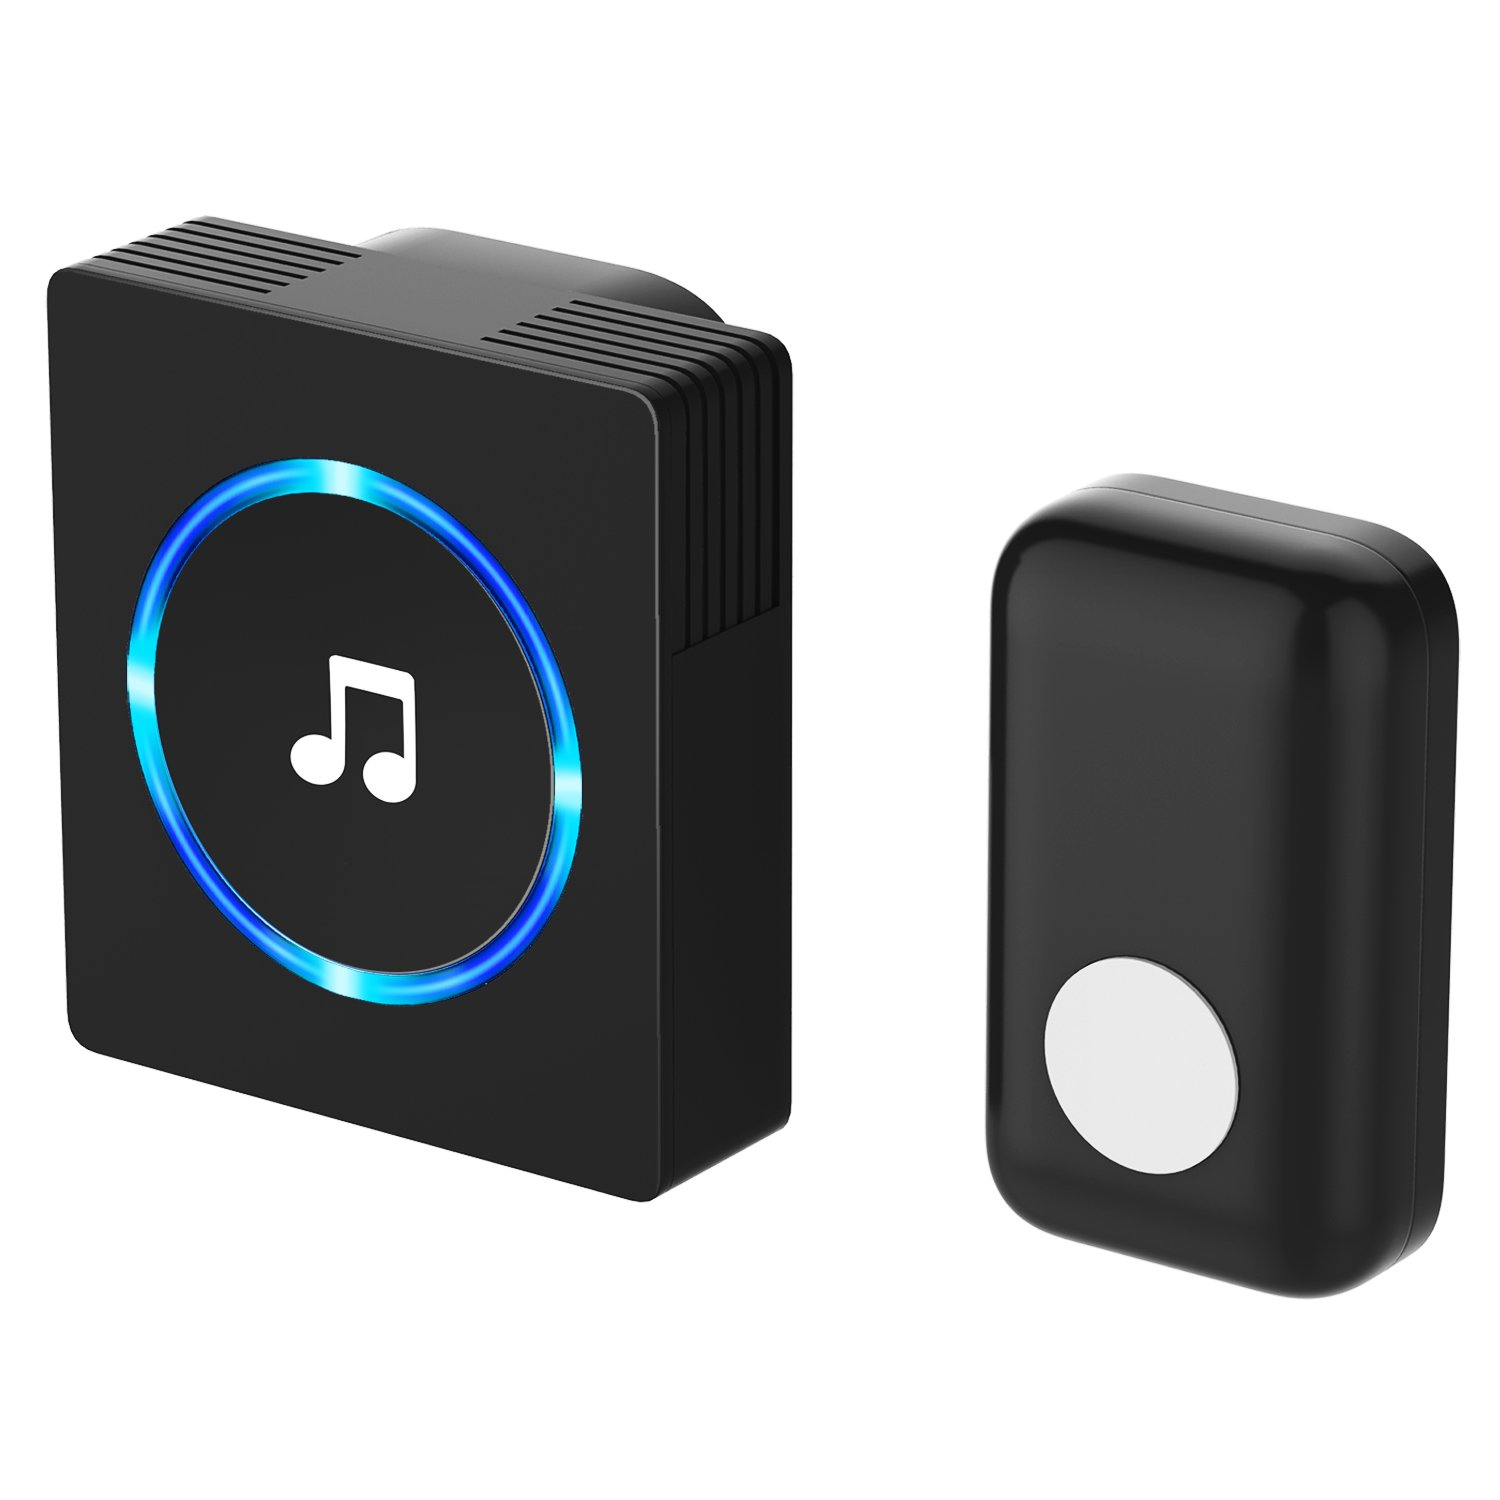 Chime JETech Portable Wireless DoorBell Chime Plug in Push Button